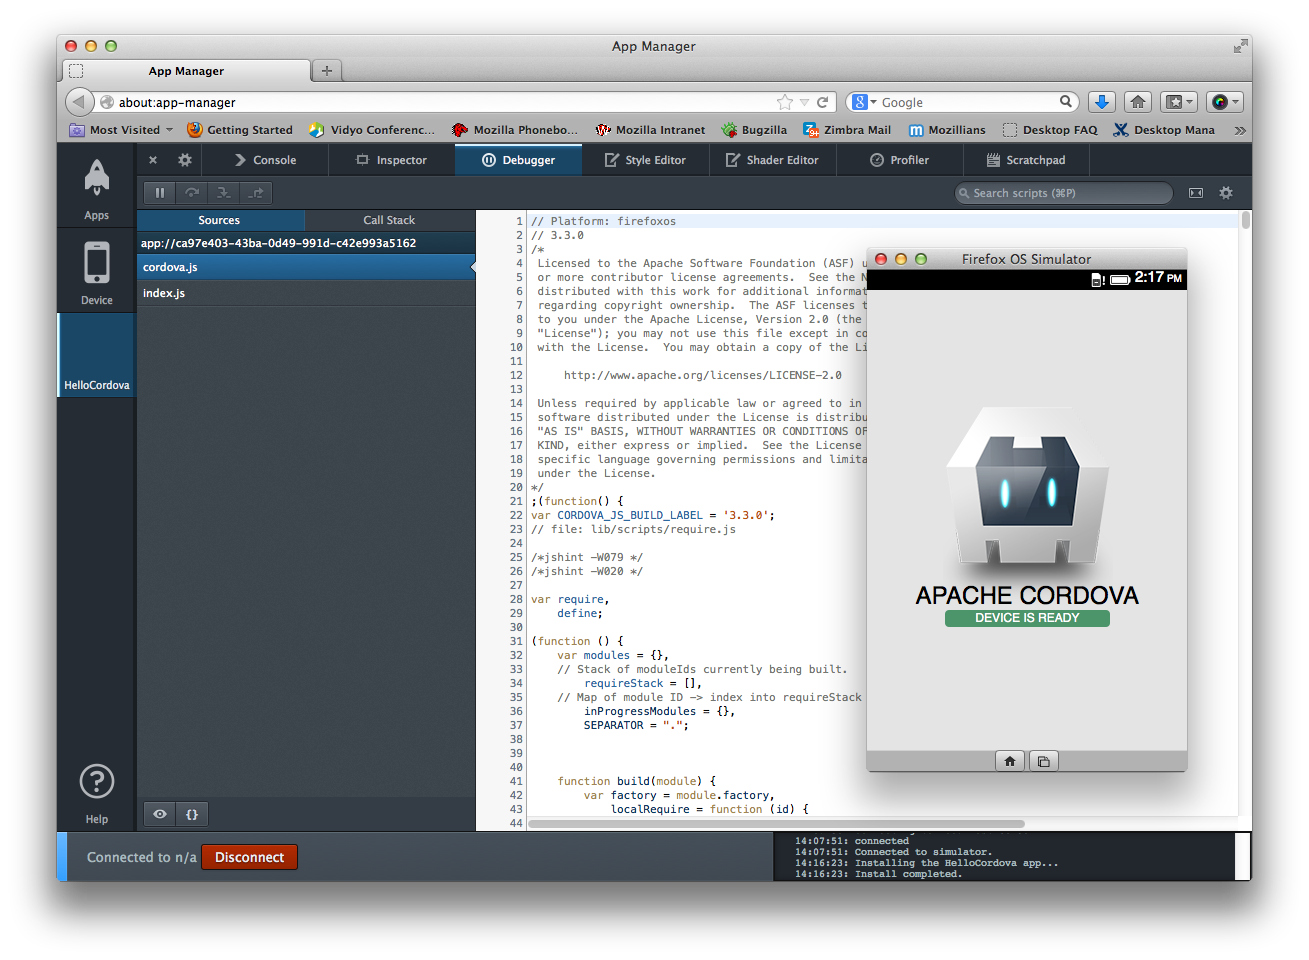 Firefox's App Manager is here used in conjunction with Cordova, a tool for cross-platform mobile programming using Web standards.